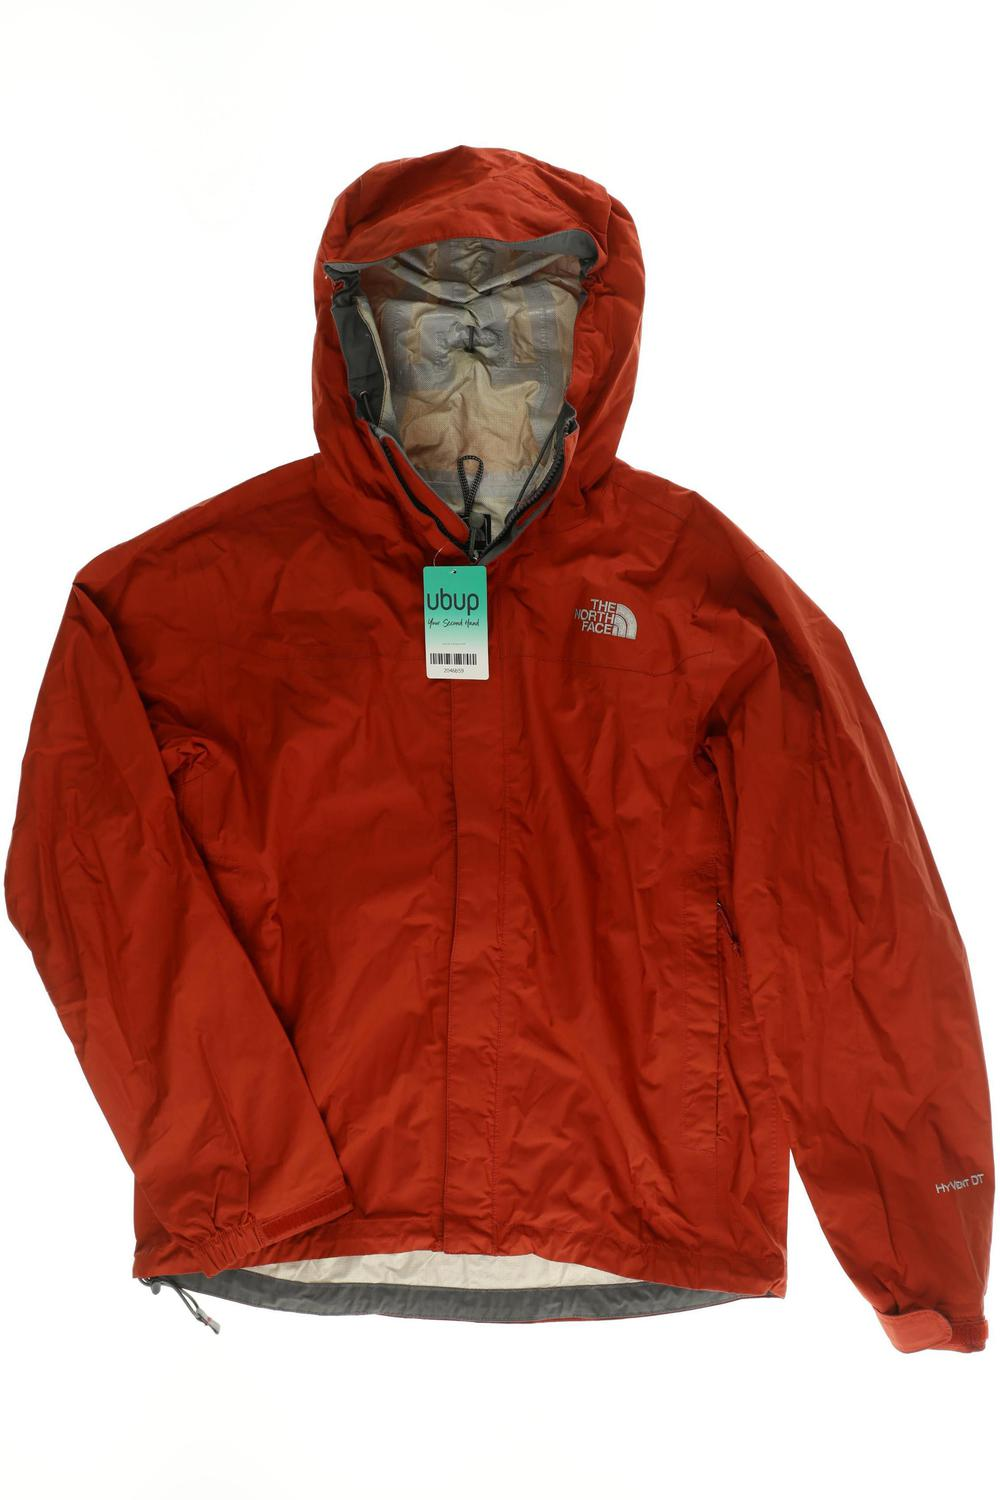 The North Face Damen Jacke INT M Second Hand kaufen | ubup